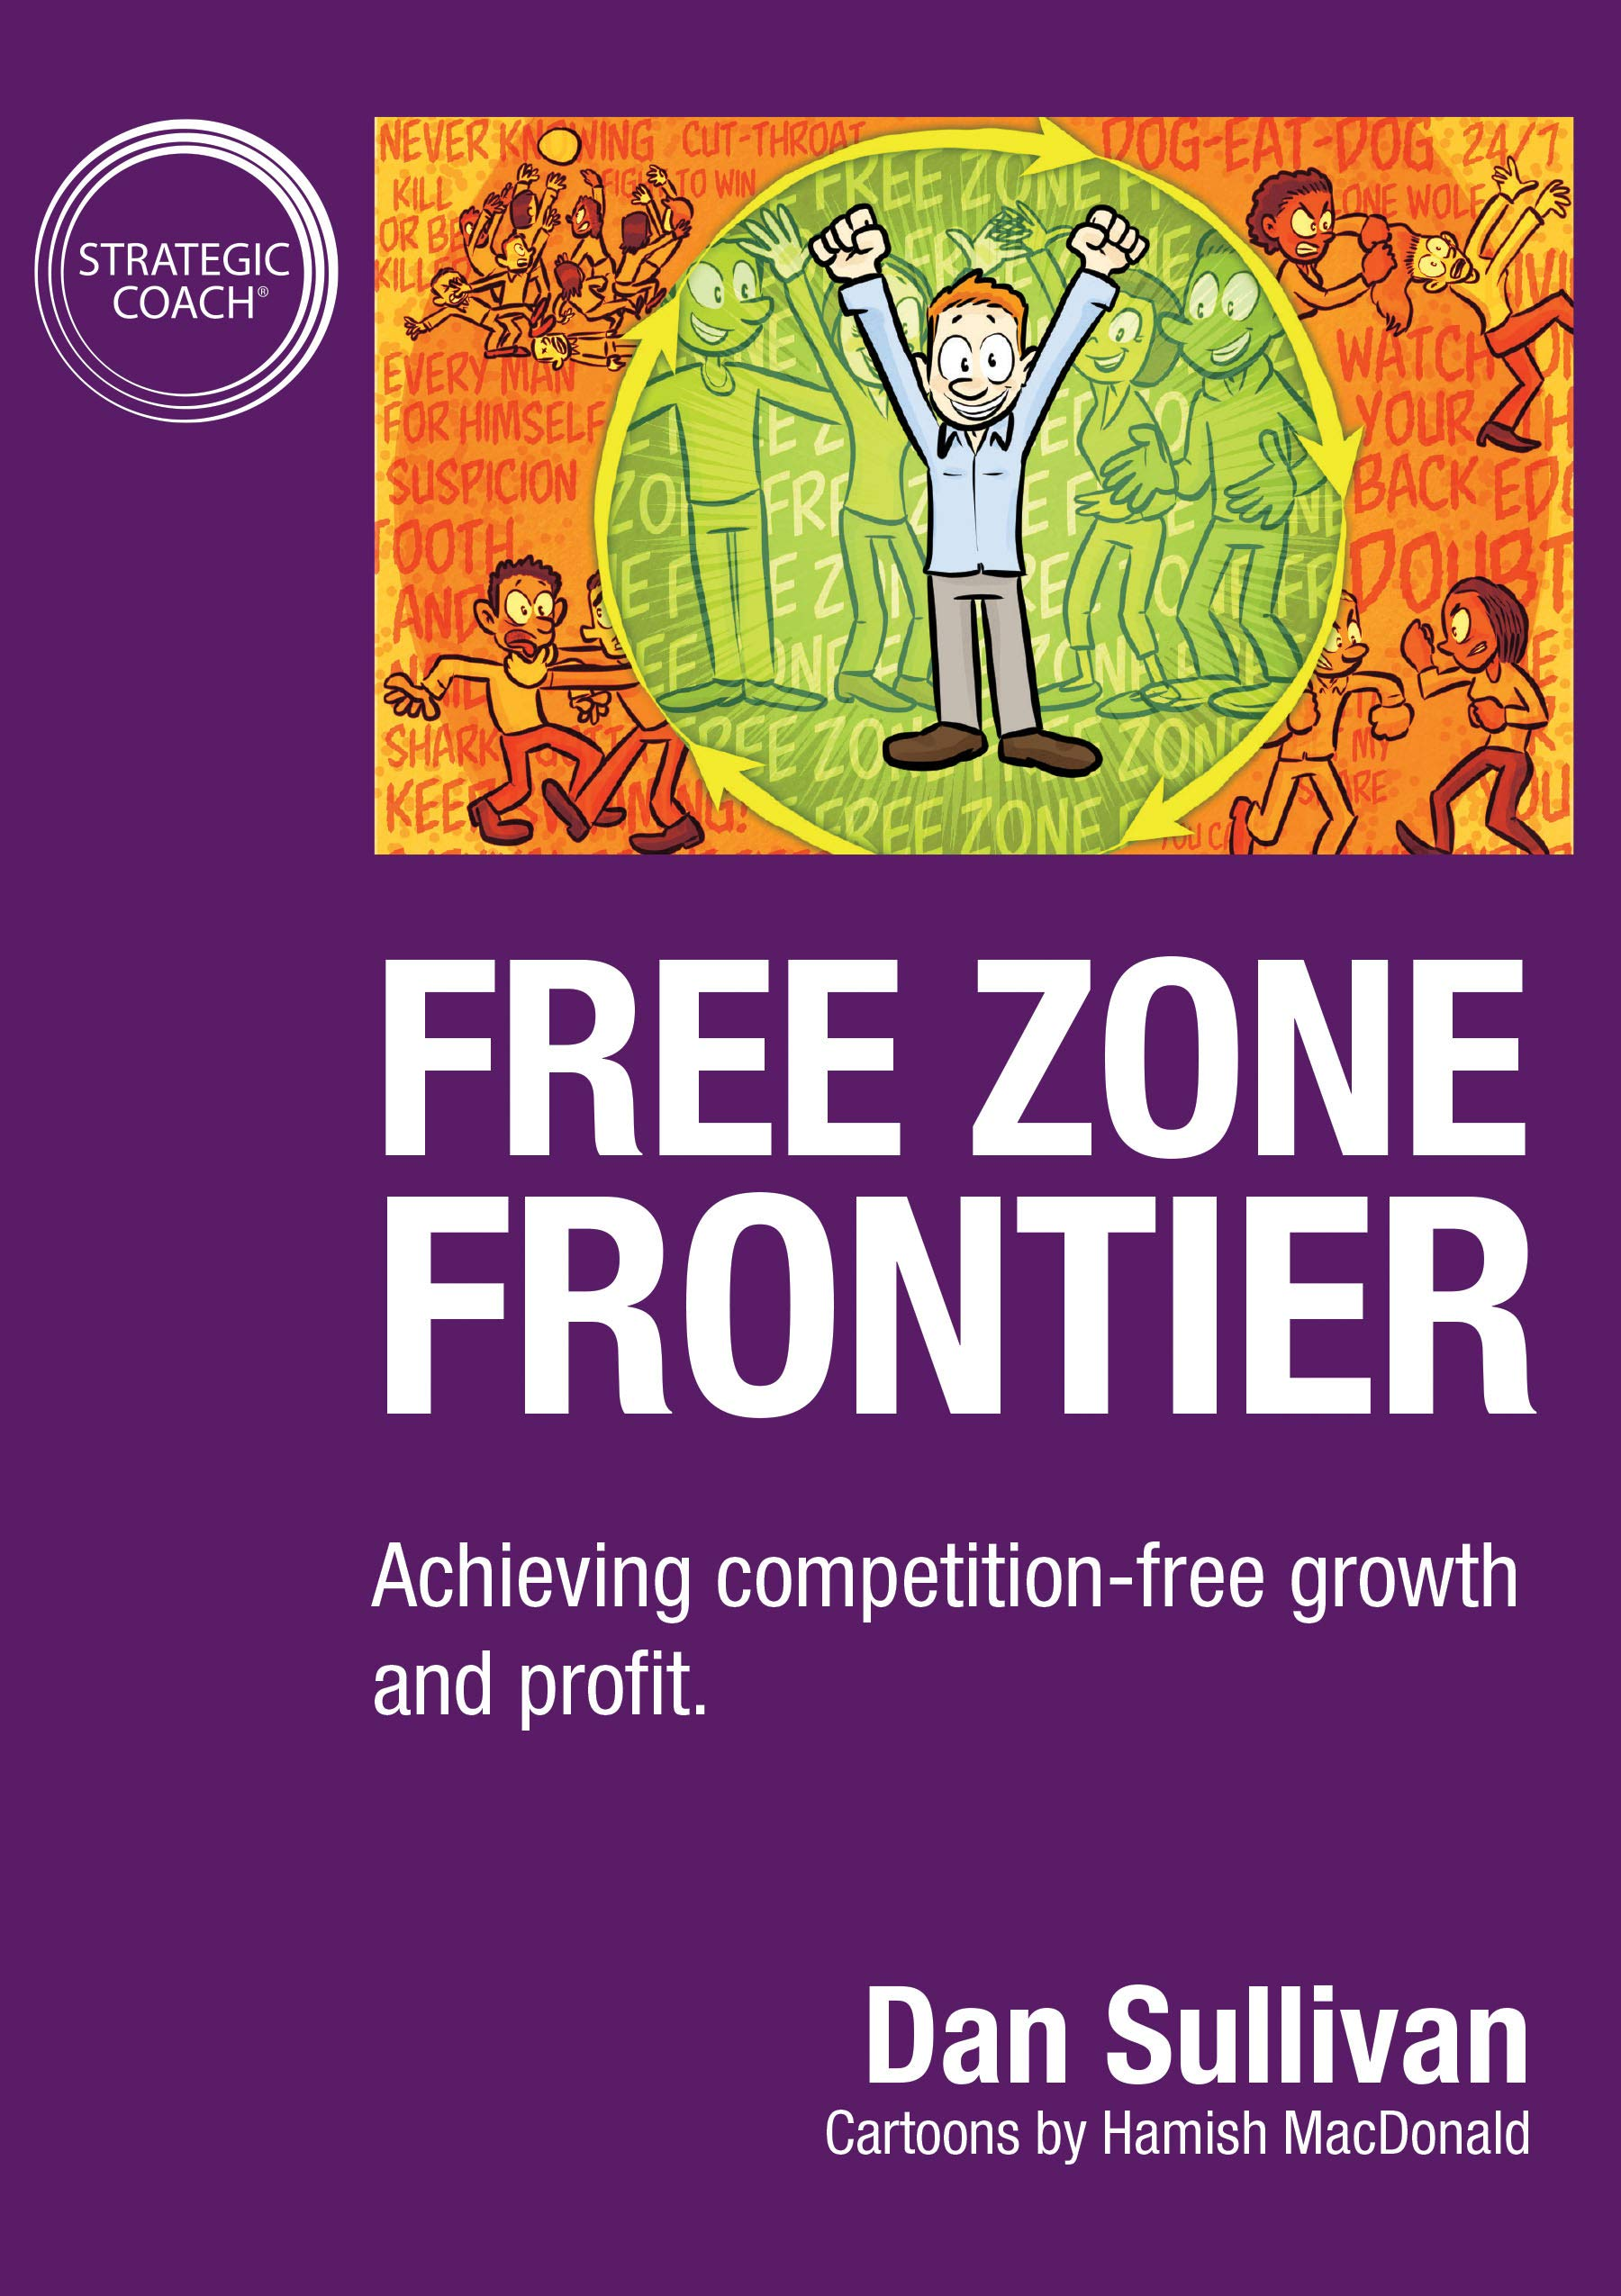 Free Zone Frontier: Achieving competition-free growth and profit